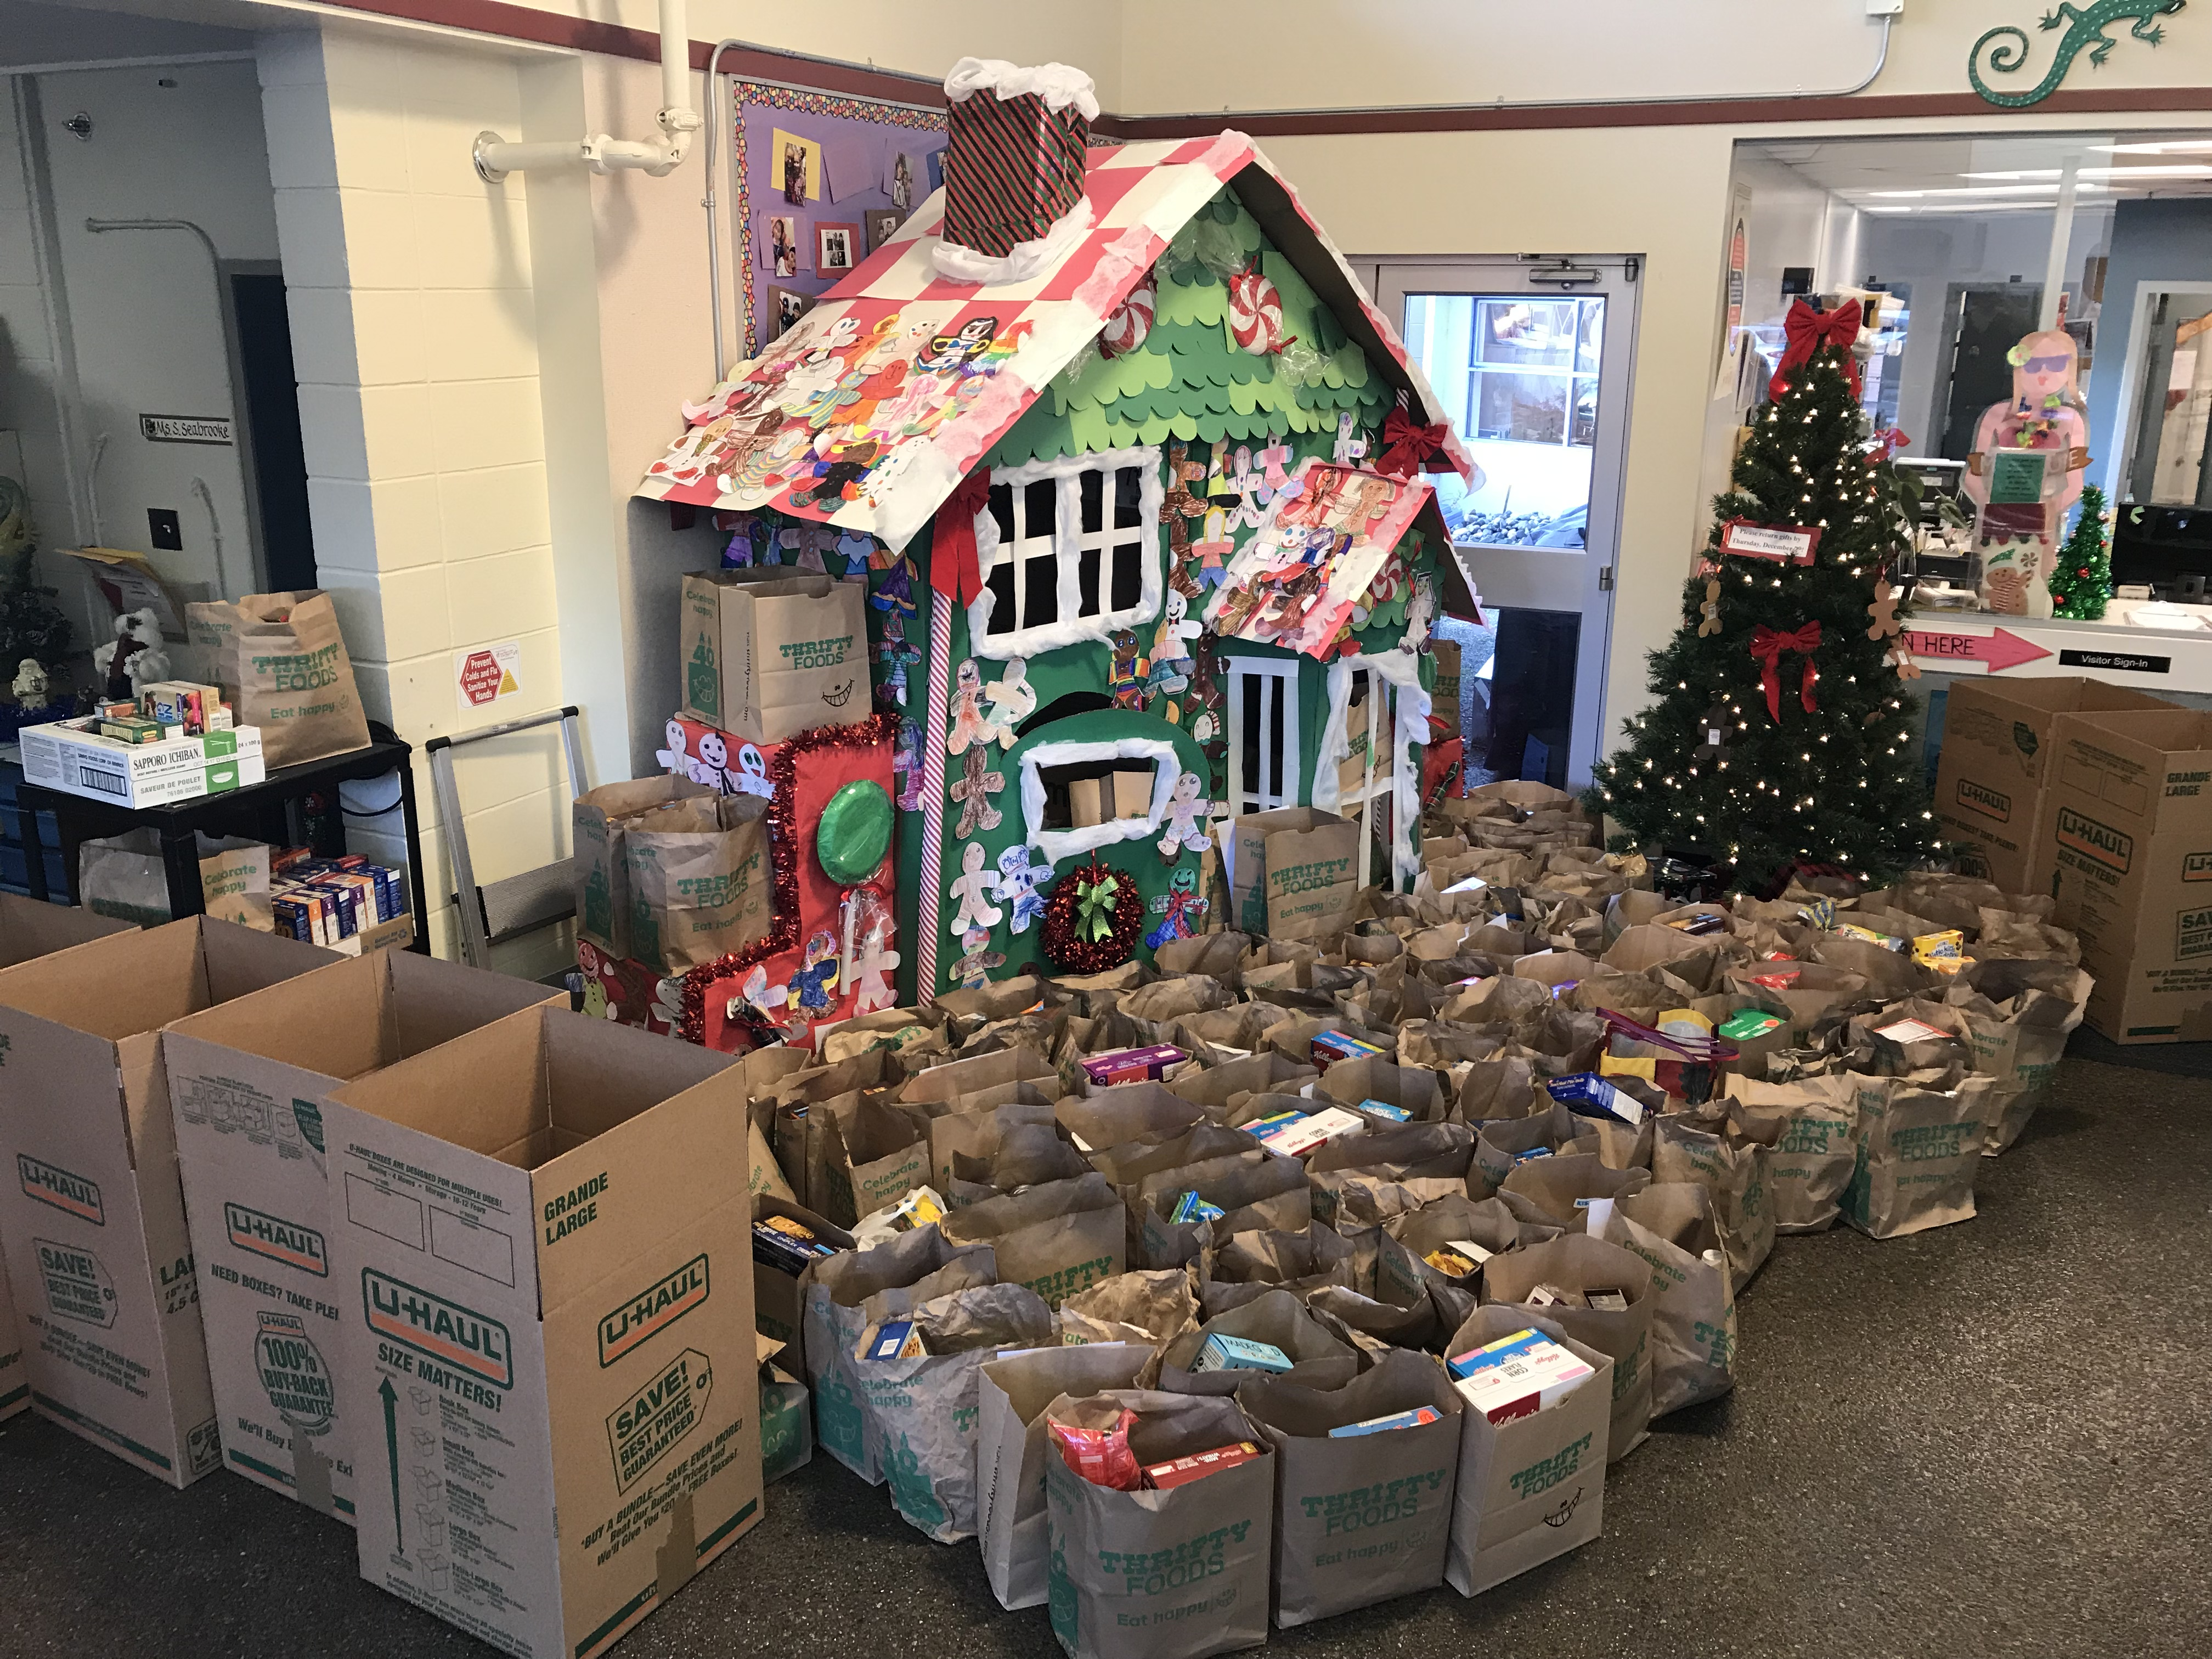 Gingerbread House Full of Food Donations